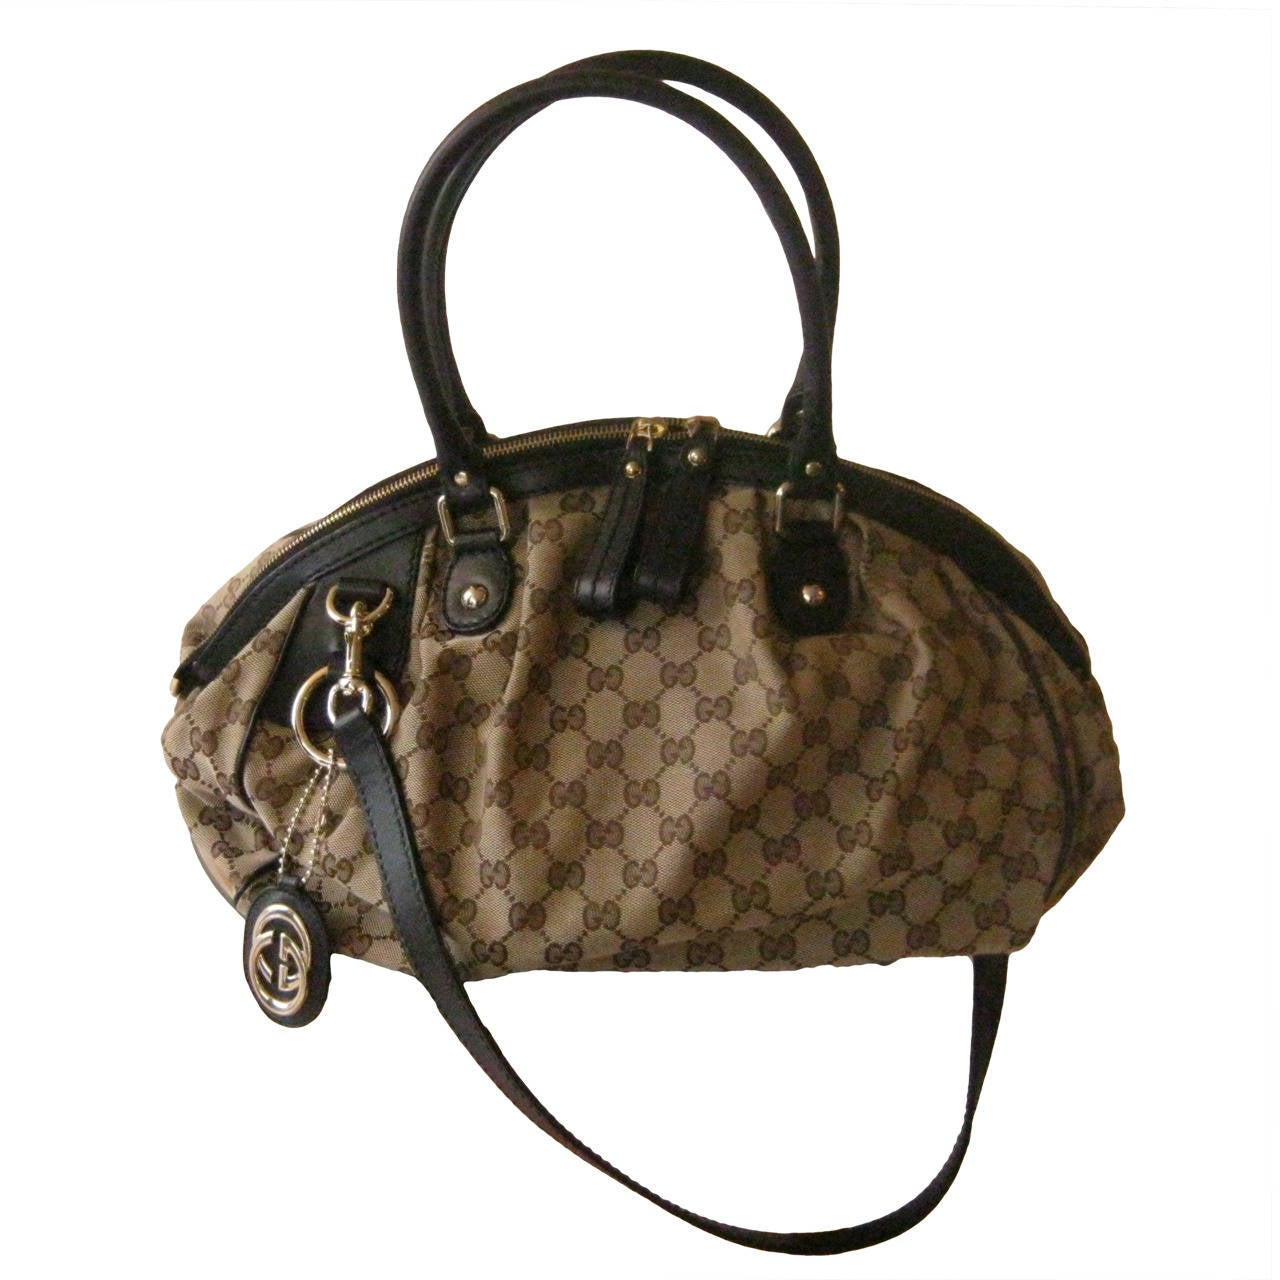 e53850ac4695 Gucci Sukey Medium Boston Bag | Stanford Center for Opportunity ...